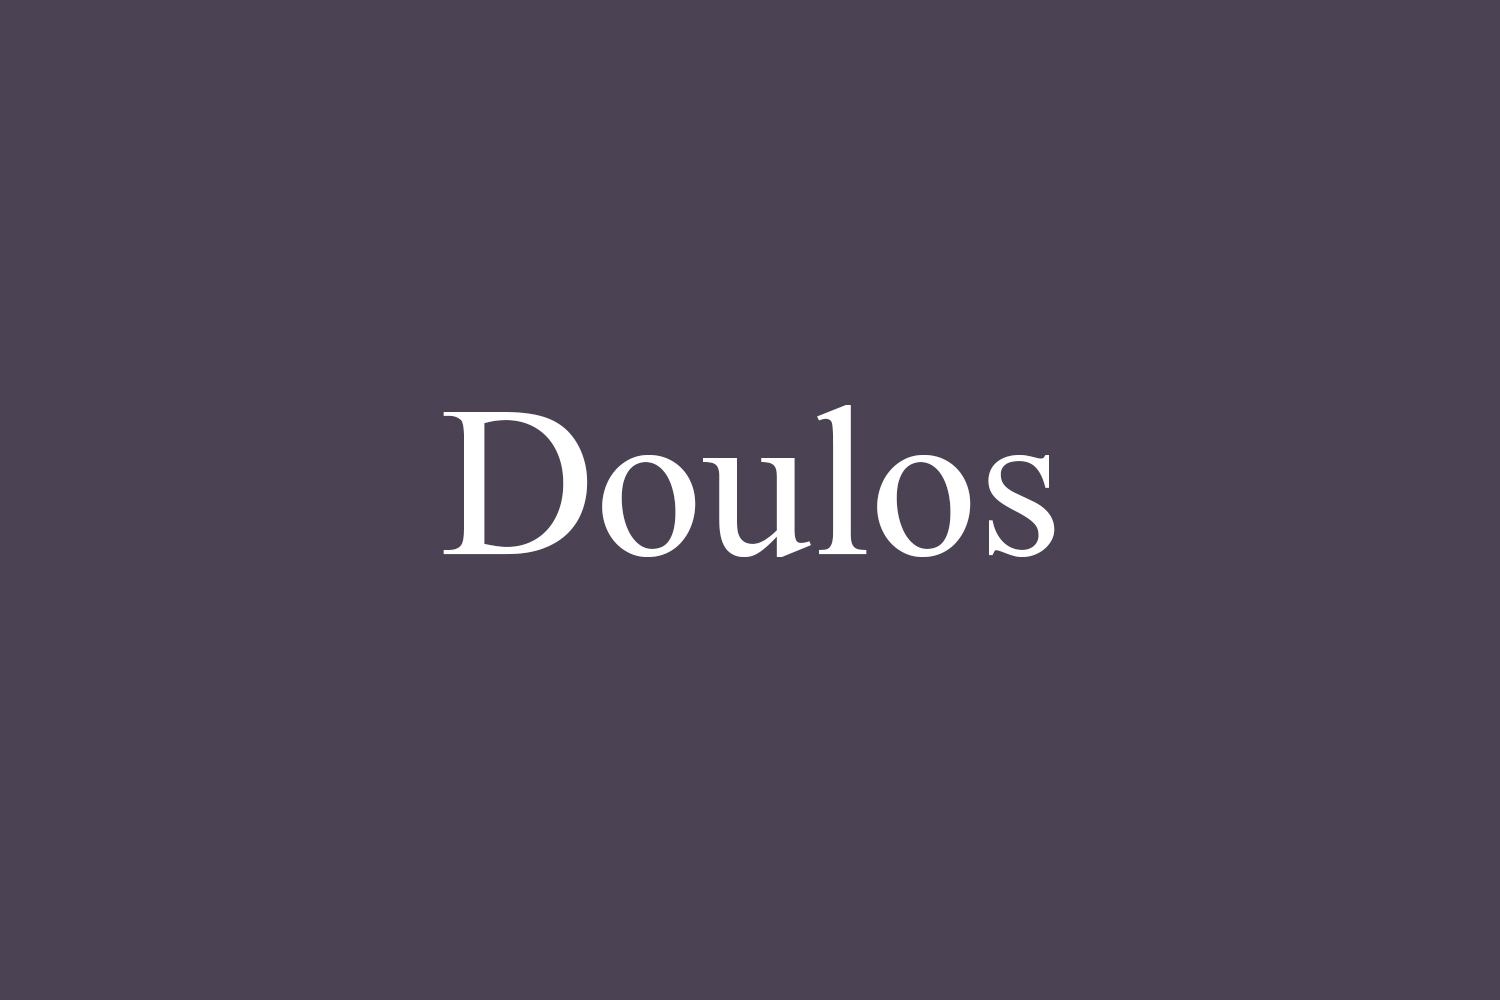 Doulos Free Font